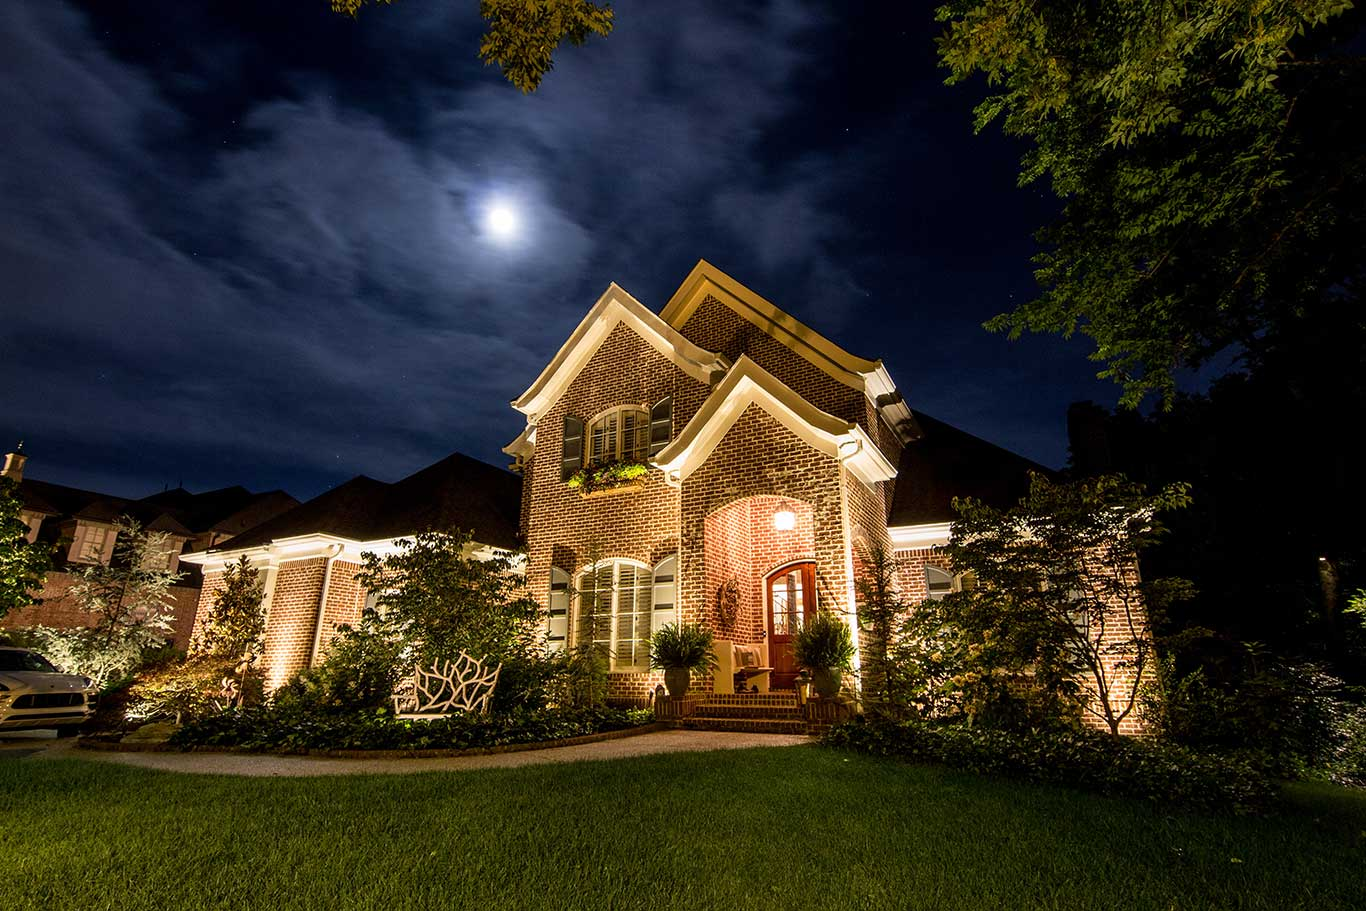 Brentwood architectural lighting